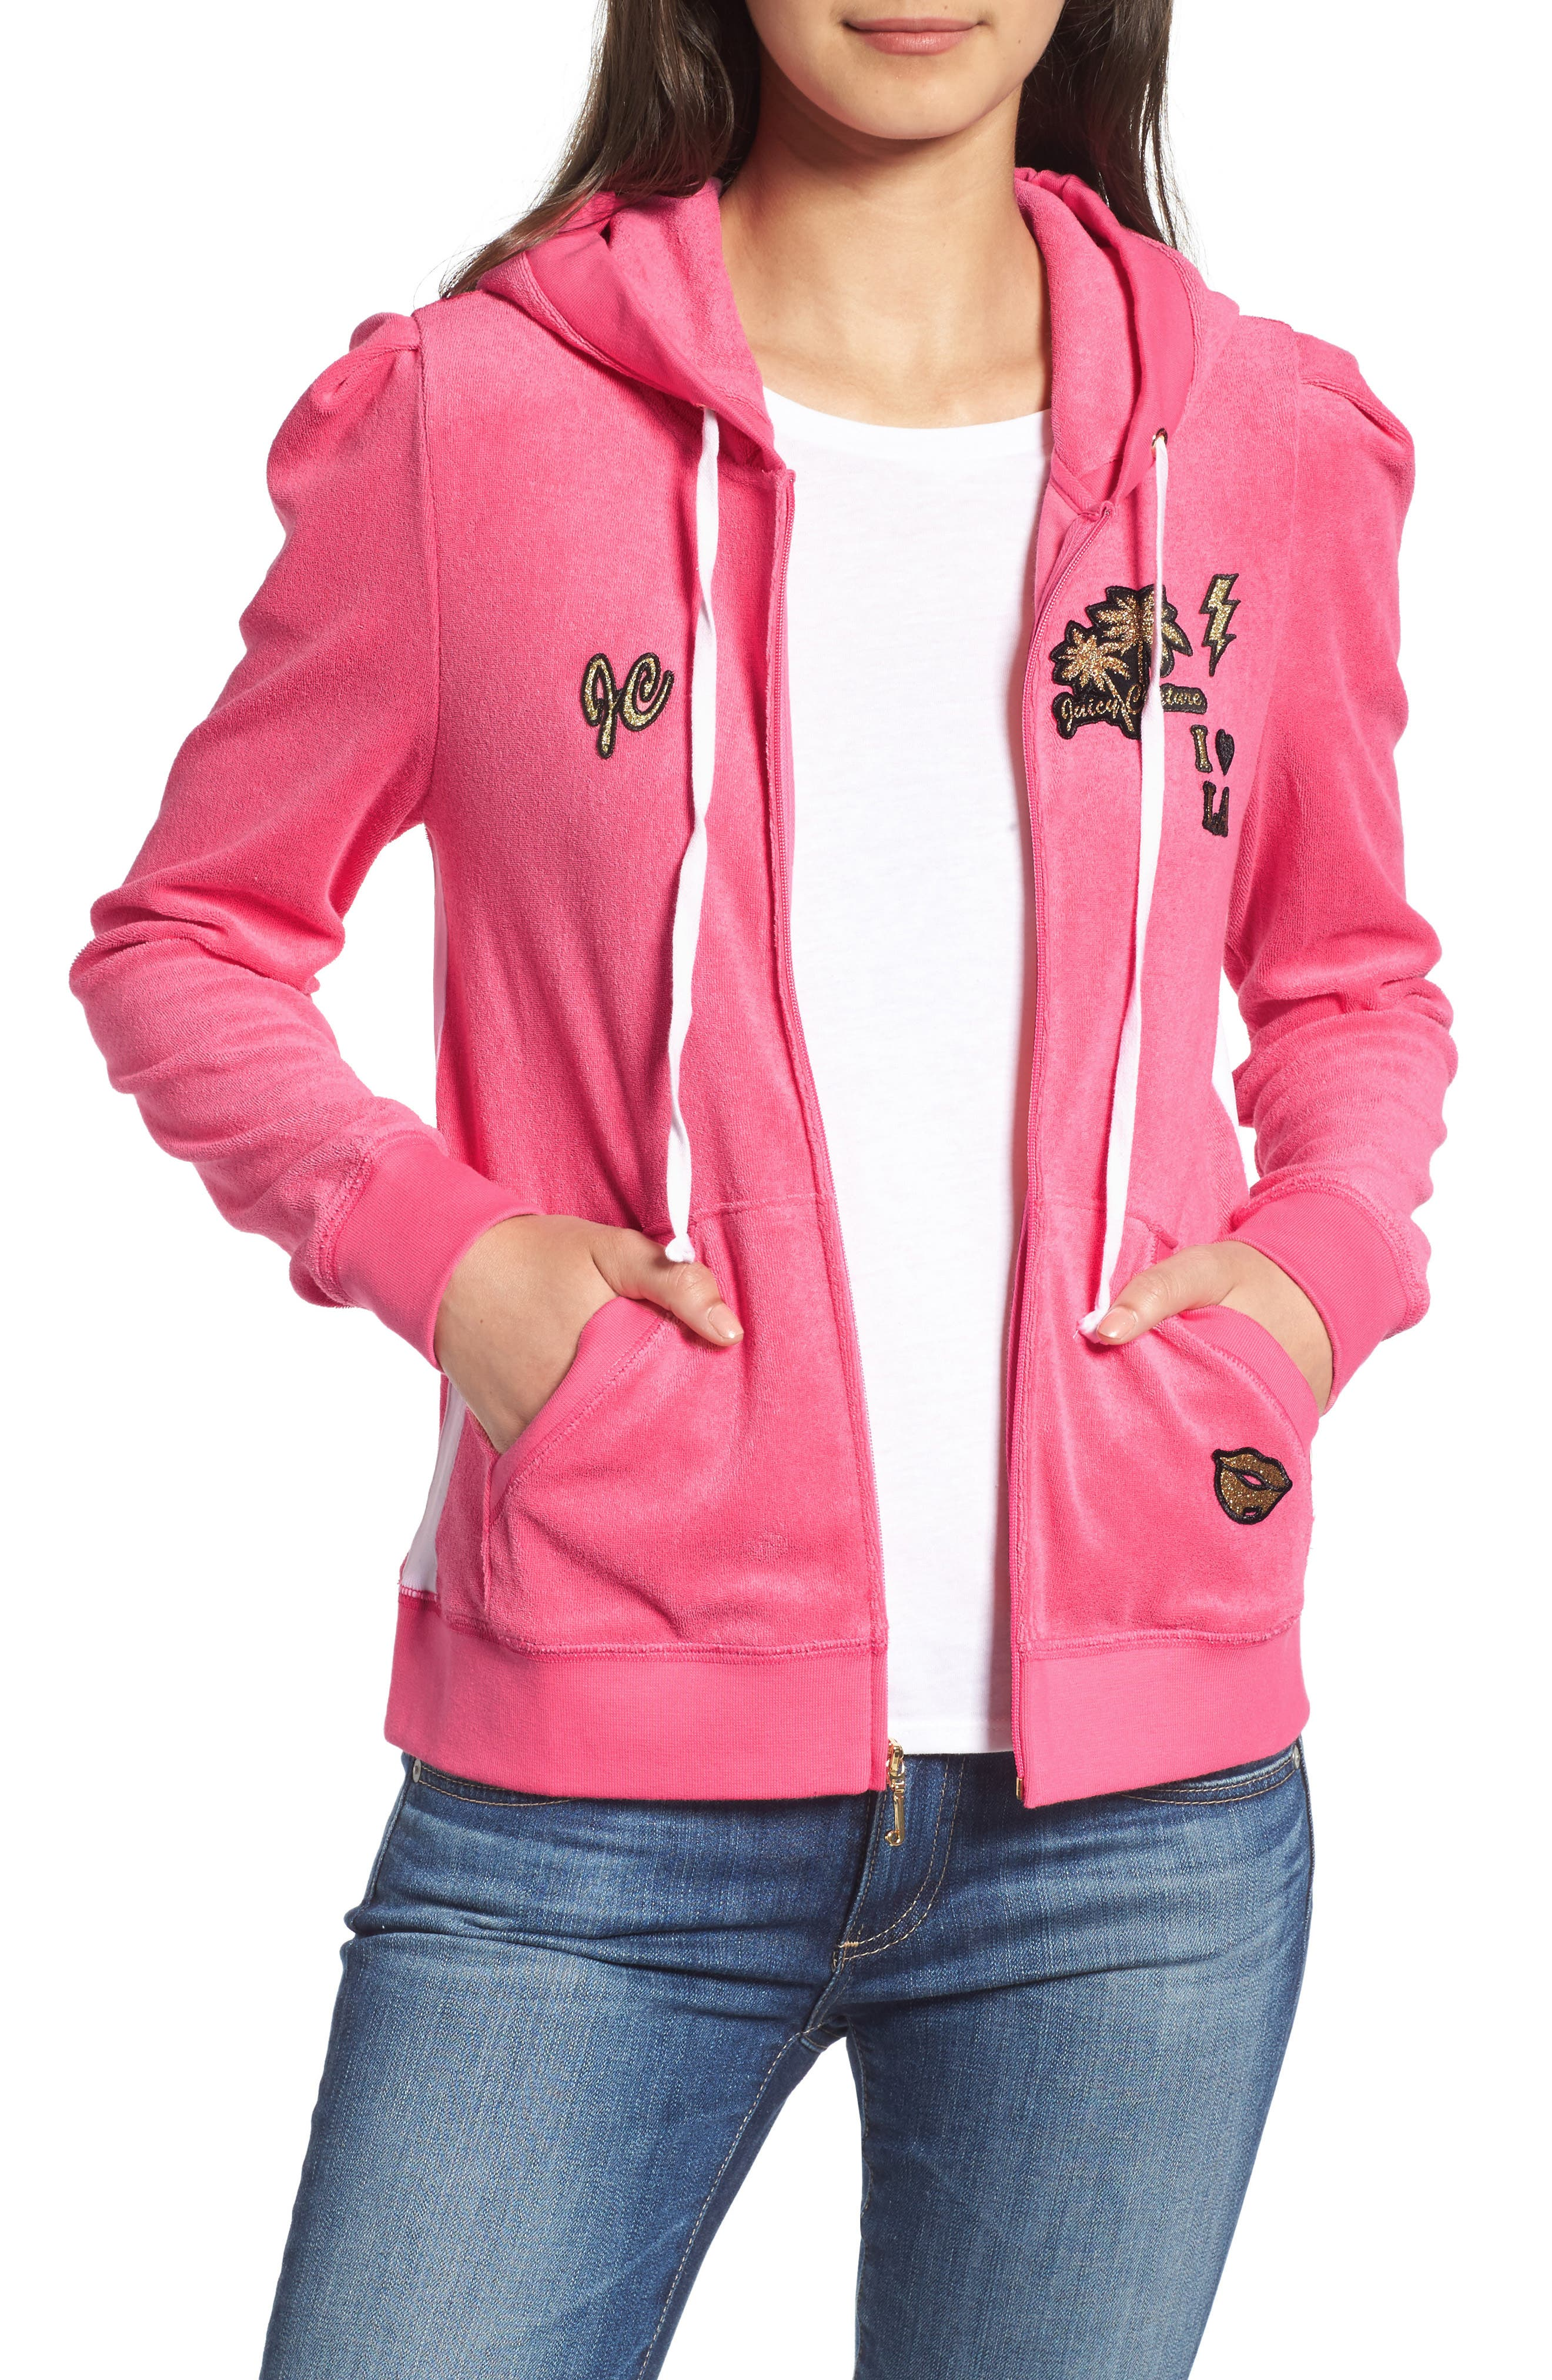 Juicy Couture Venice Beach Microterry Hoodie